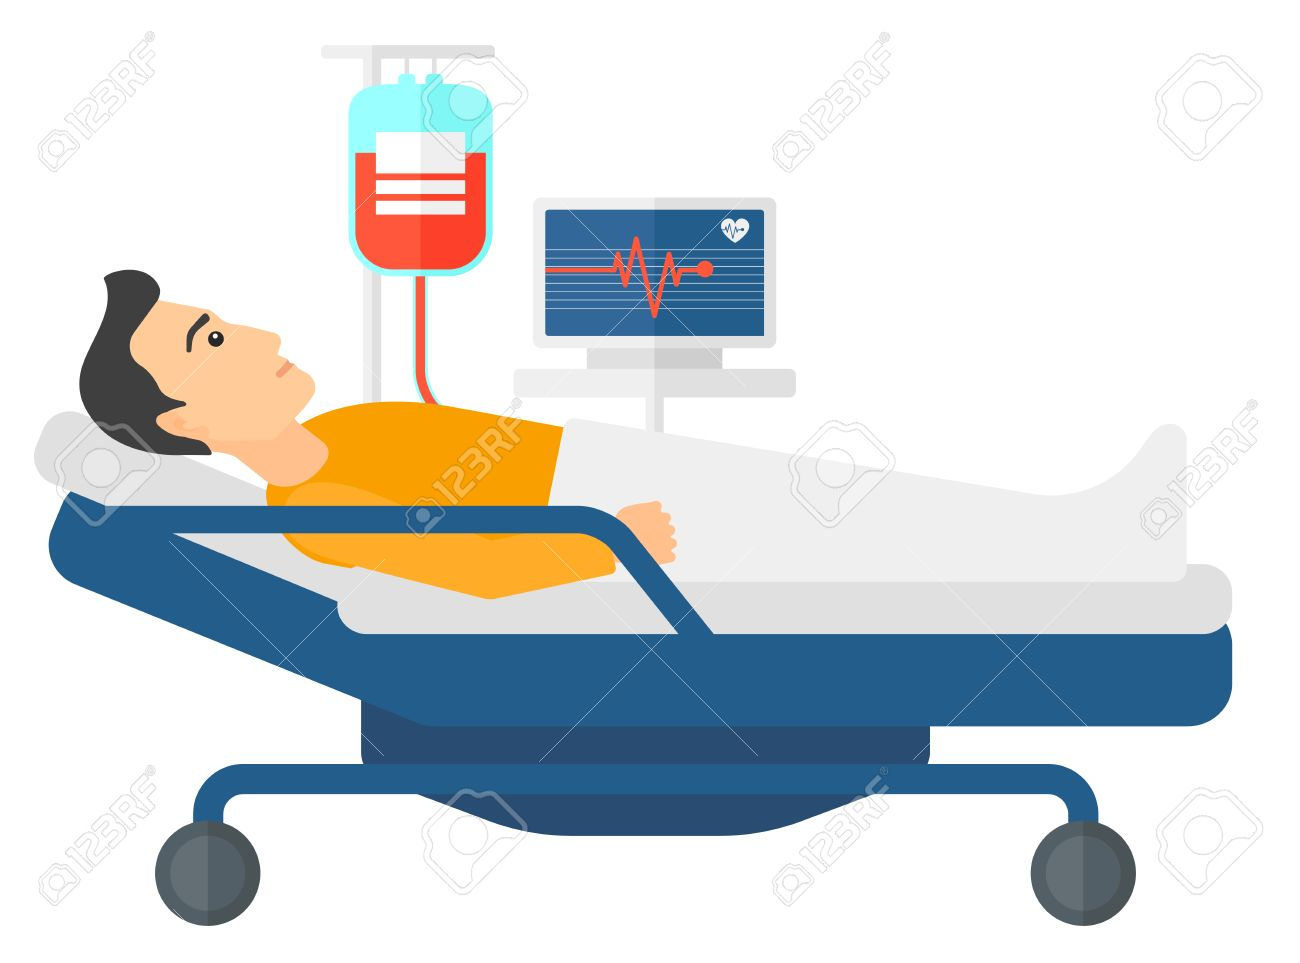 a patient lying in hospital bed with heart rate monitor while rh 123rf com patient hospital bed clipart hospital bed clipart images